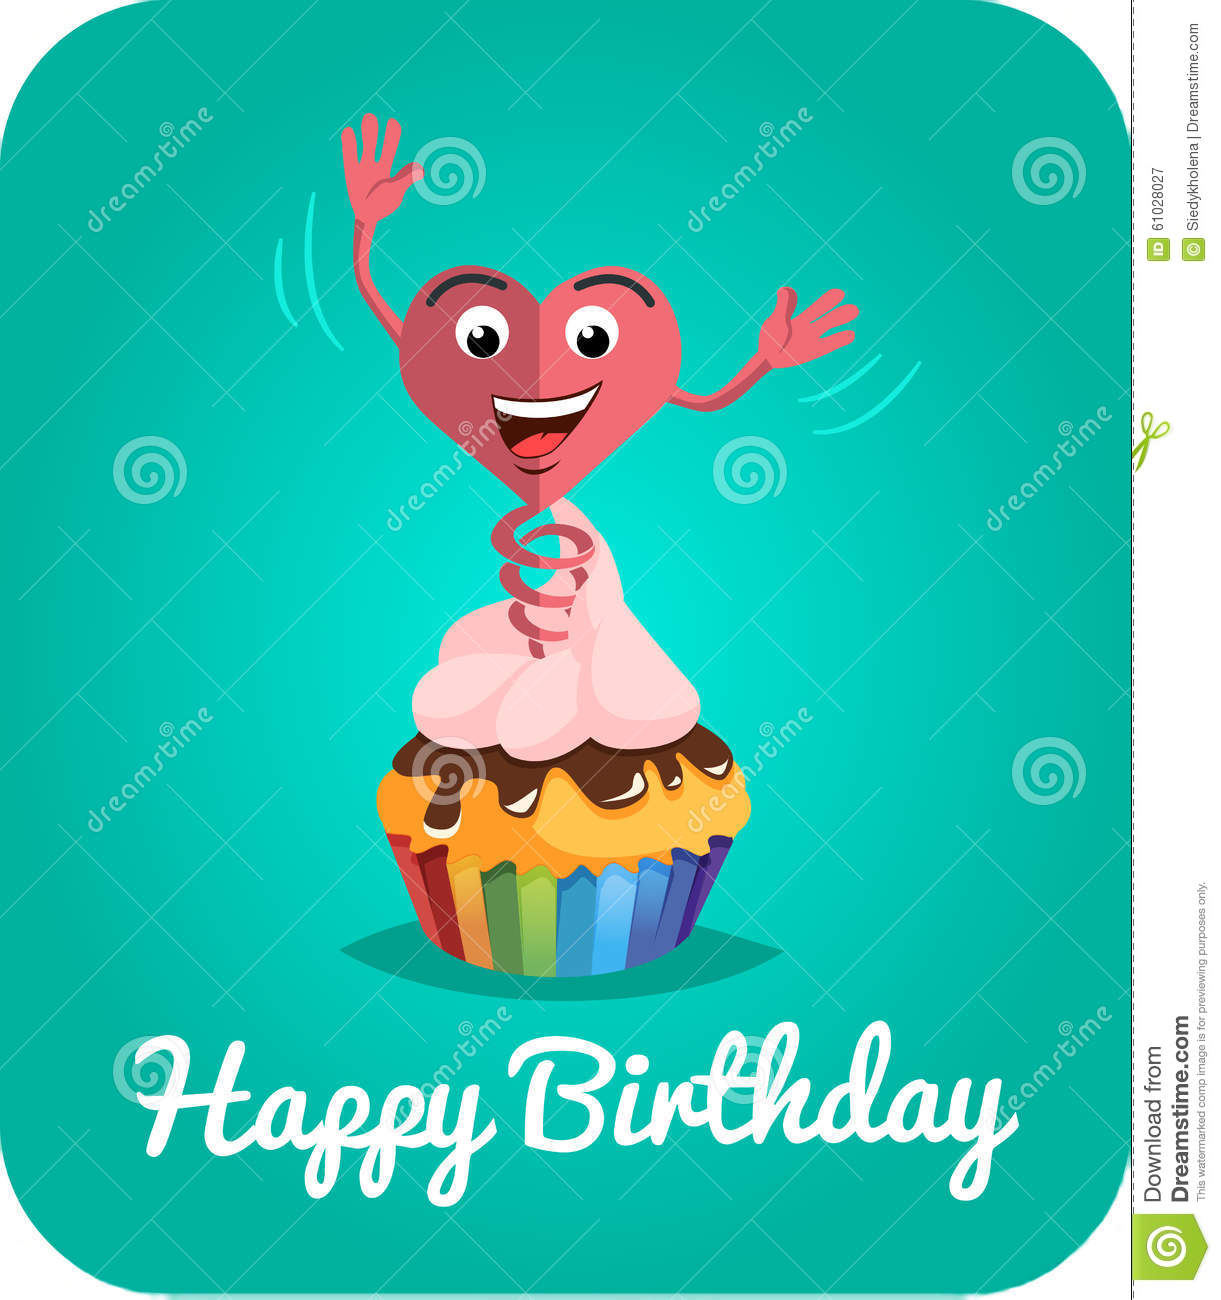 Happy Birthday Card Jumps Out Of Cake 2 Stock Illustration